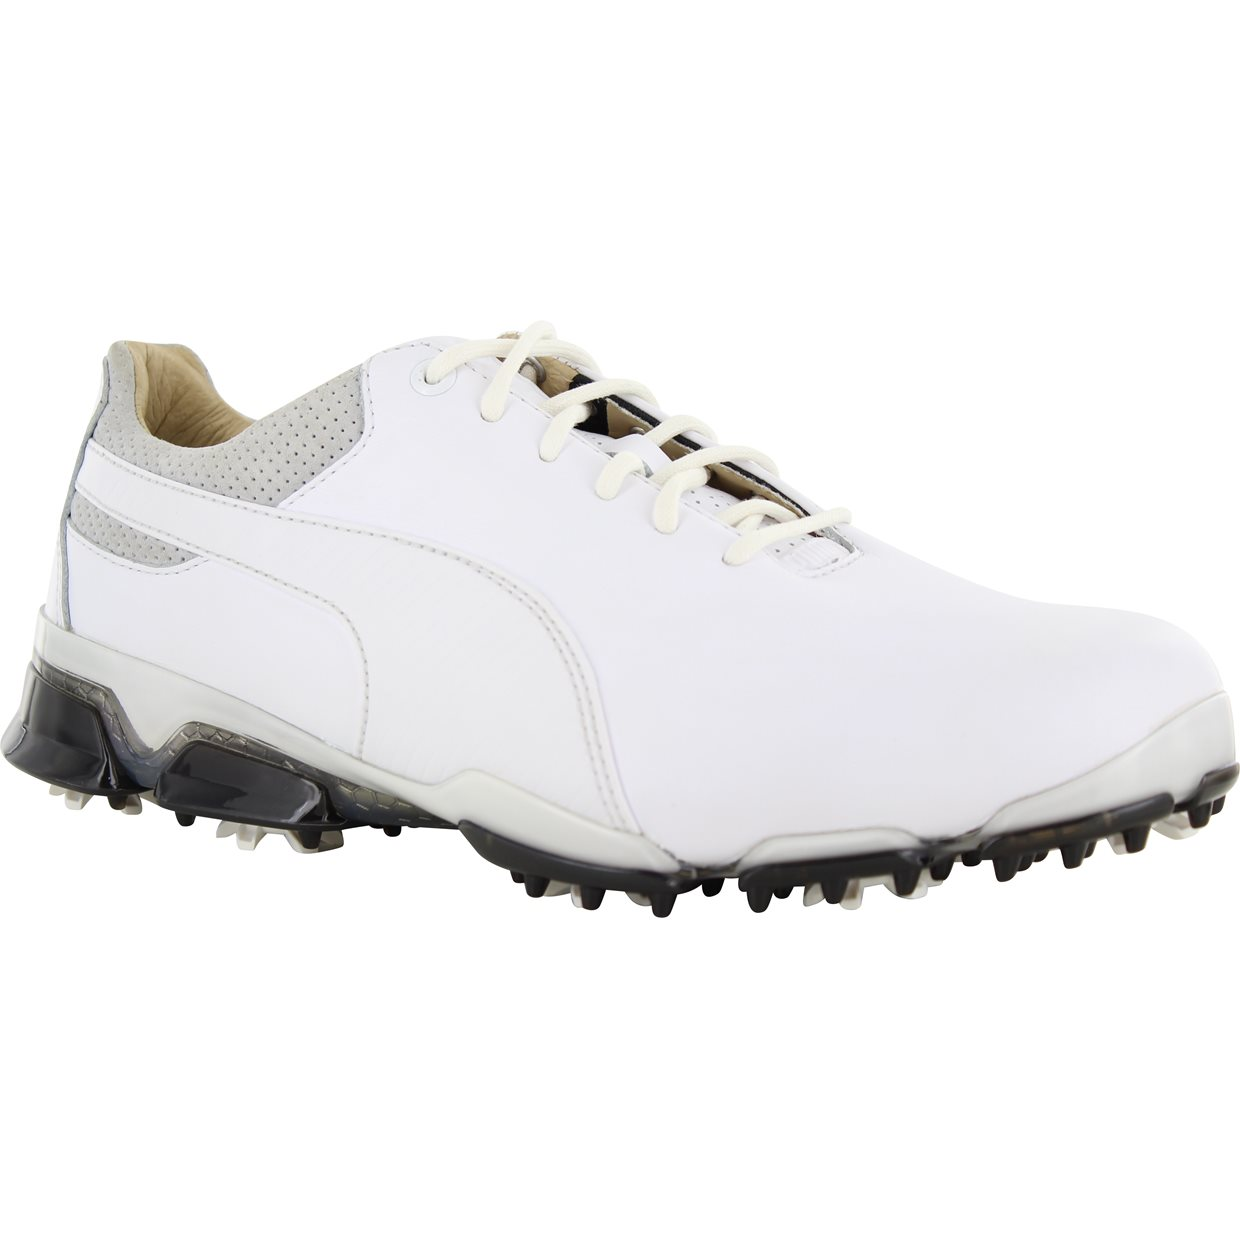 Nike Tour Premium Golf Shoes White